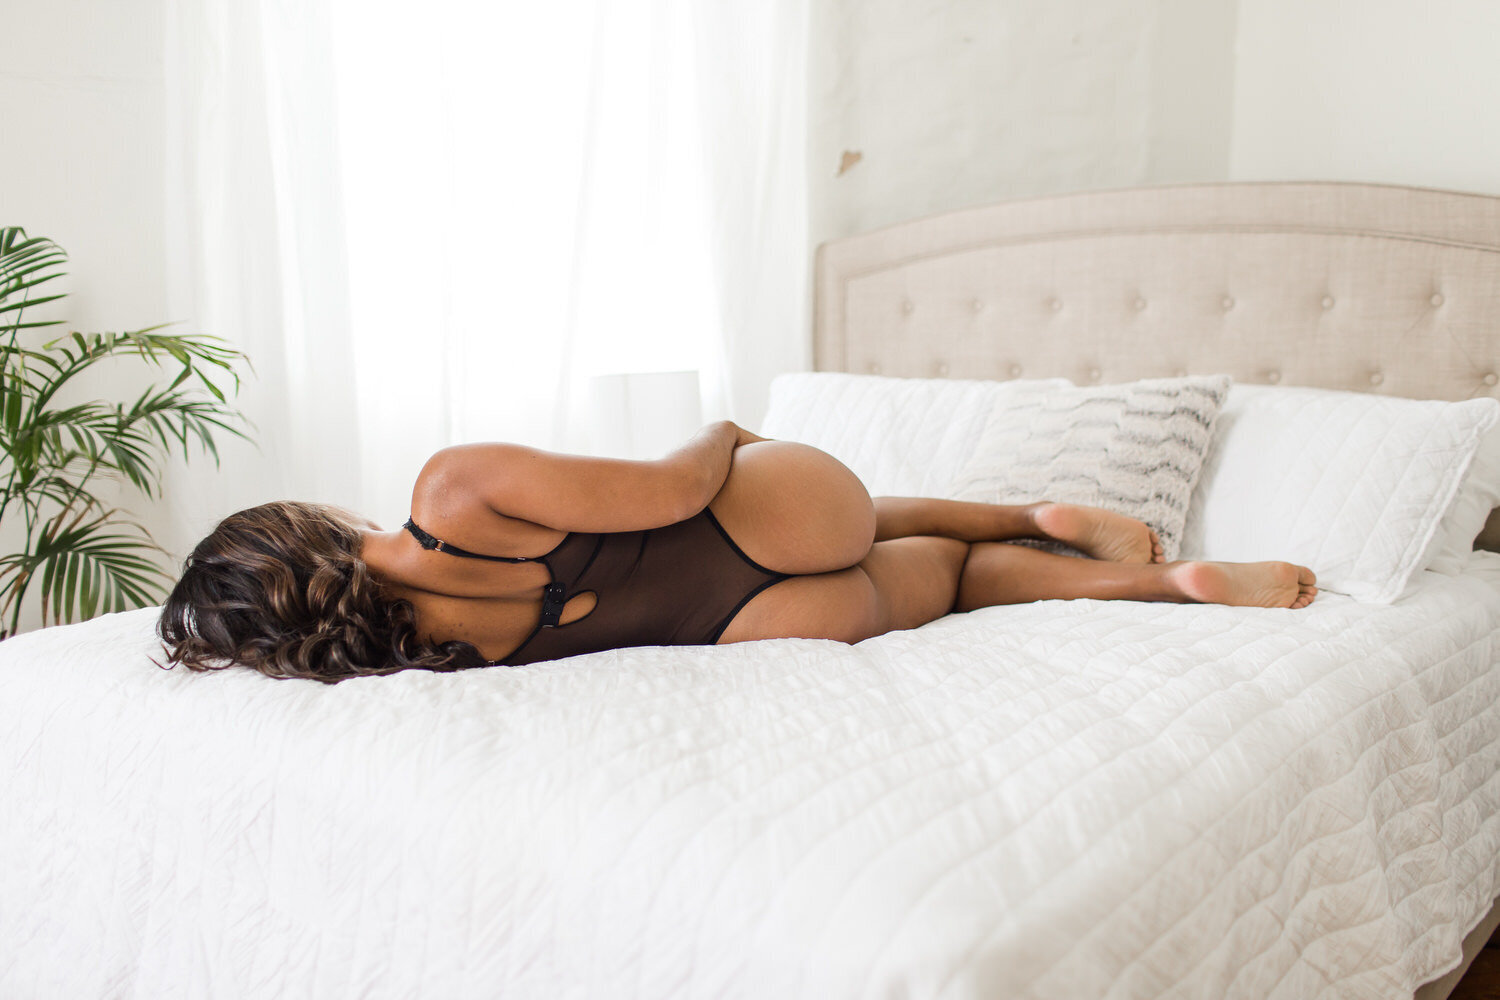 woman laying on bed in boudoir photos